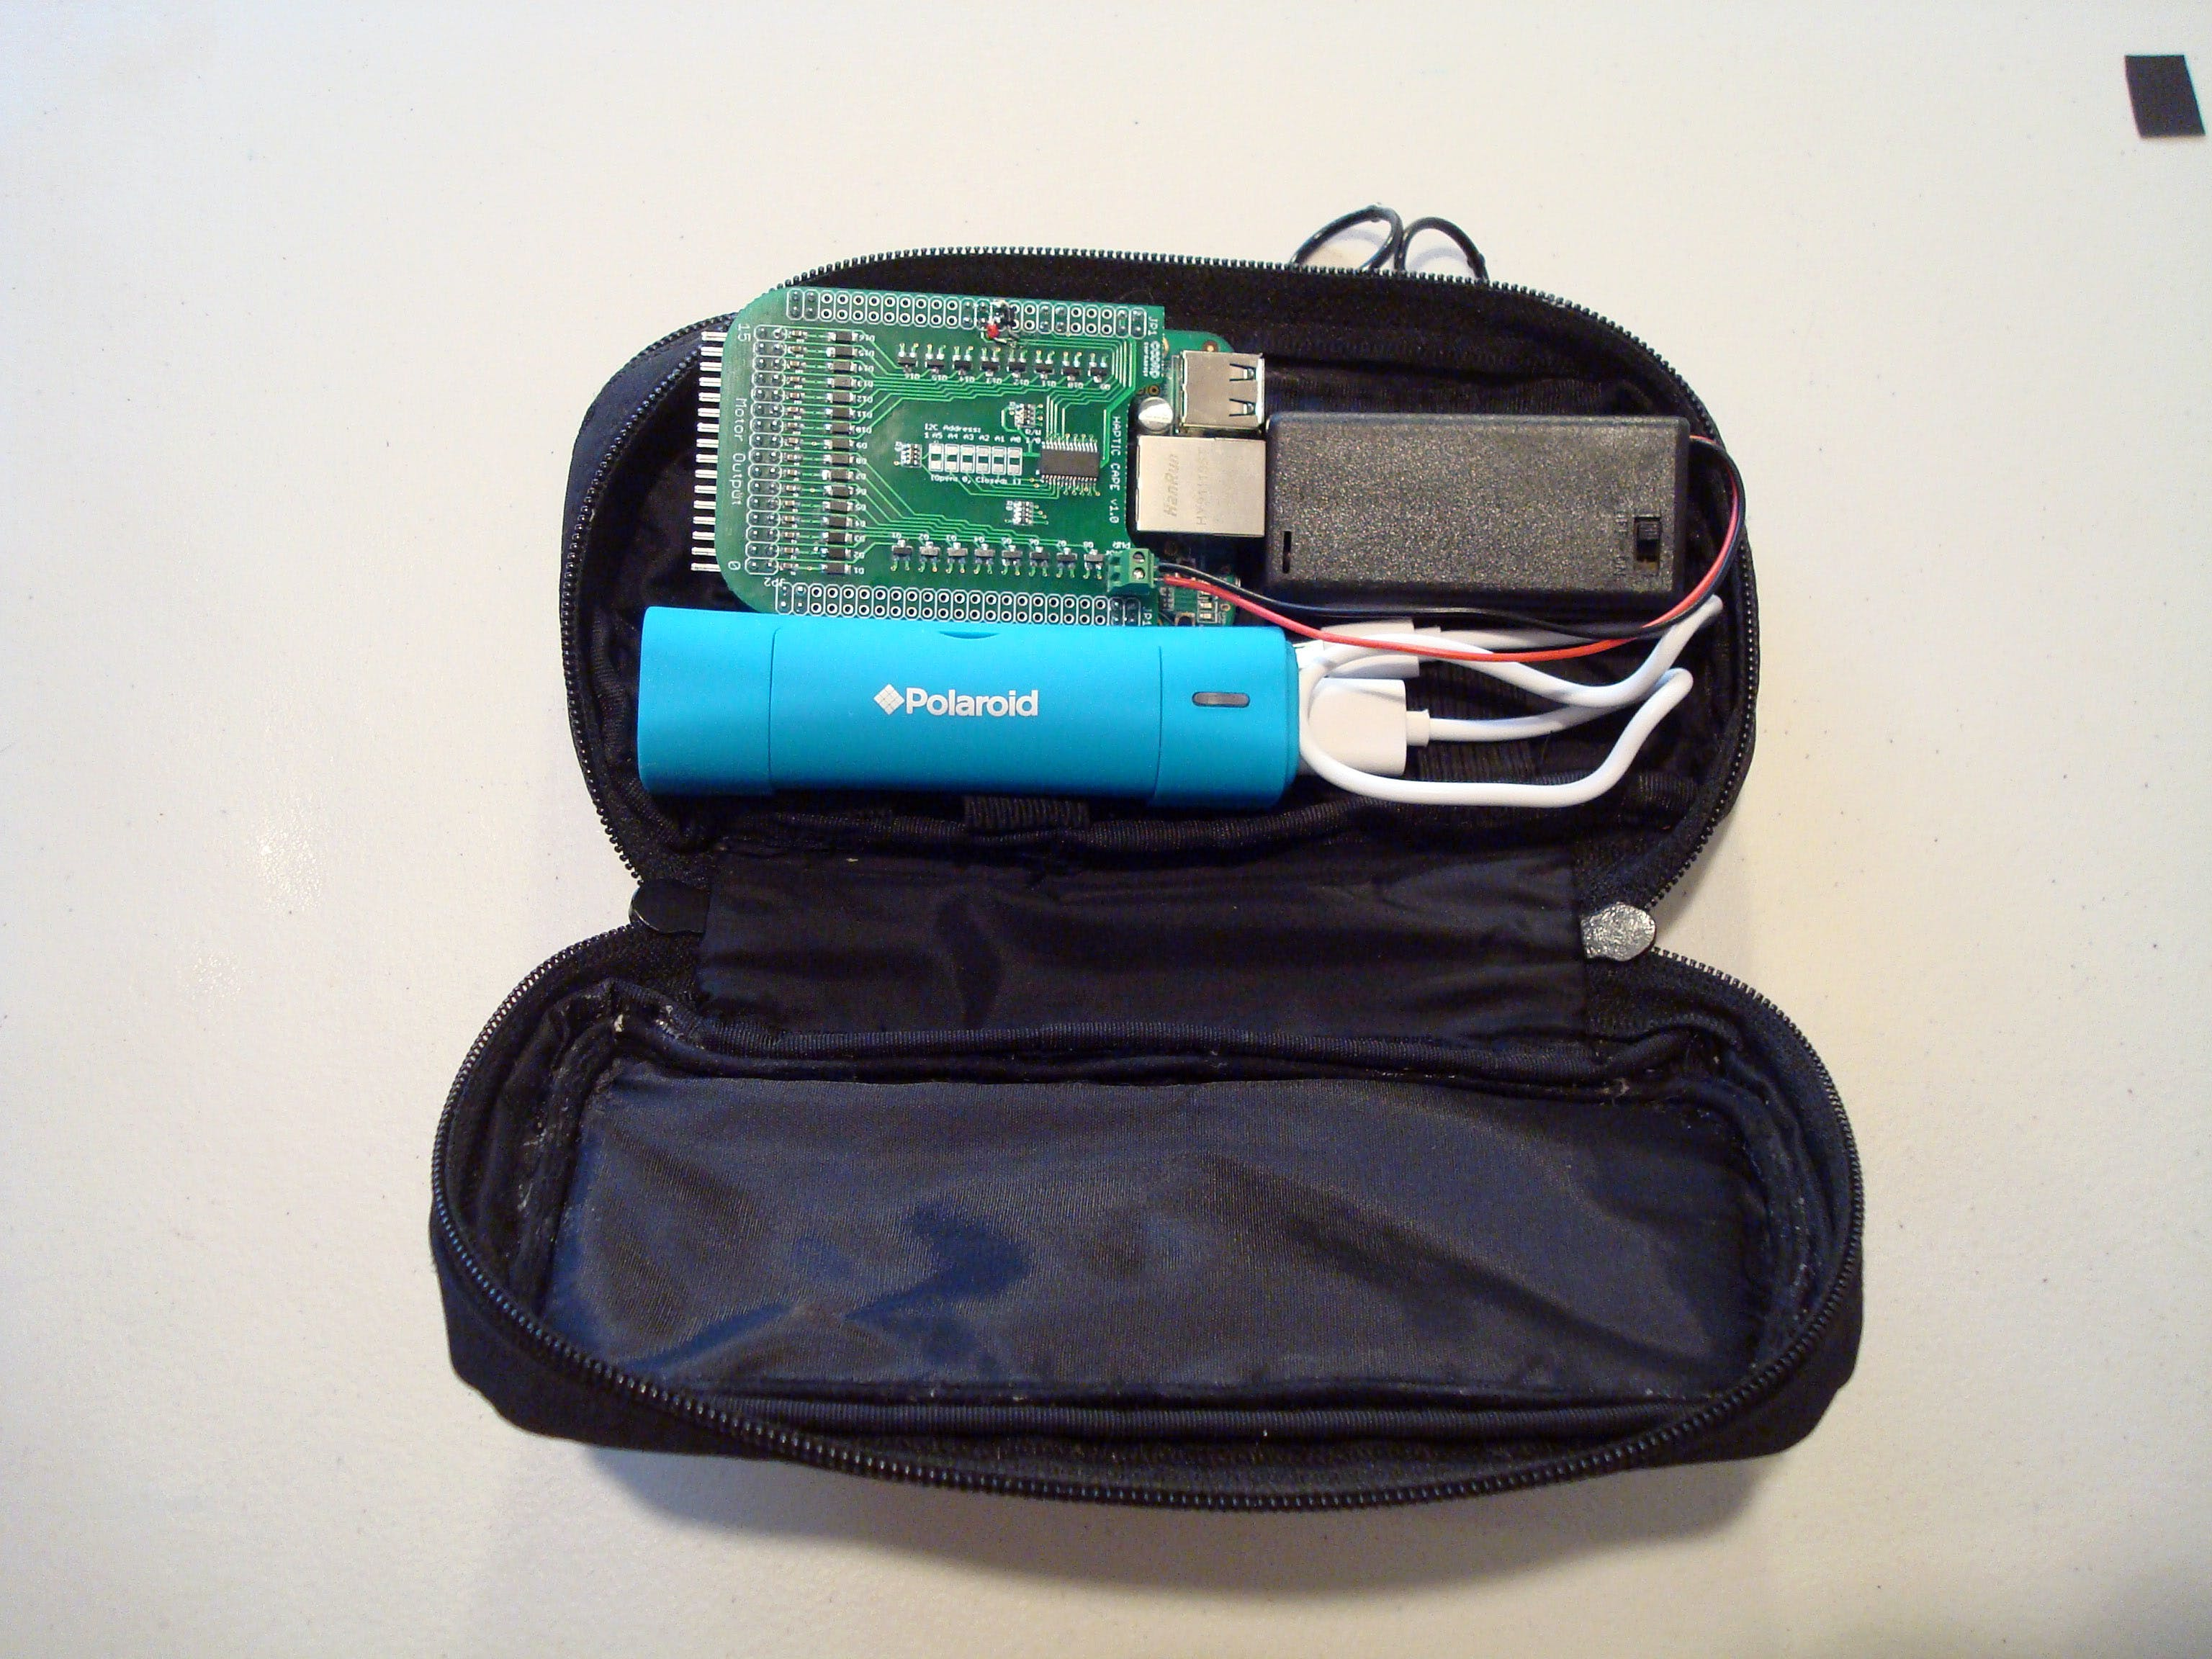 Since this is a wearable belt, a soft case for holding all the bits and pieces needed to run our equipment is vital. I've sourced a cheap case on Amazon in the project Component and Supplies list that will work just as well as the case I received as a promo freebie years back.